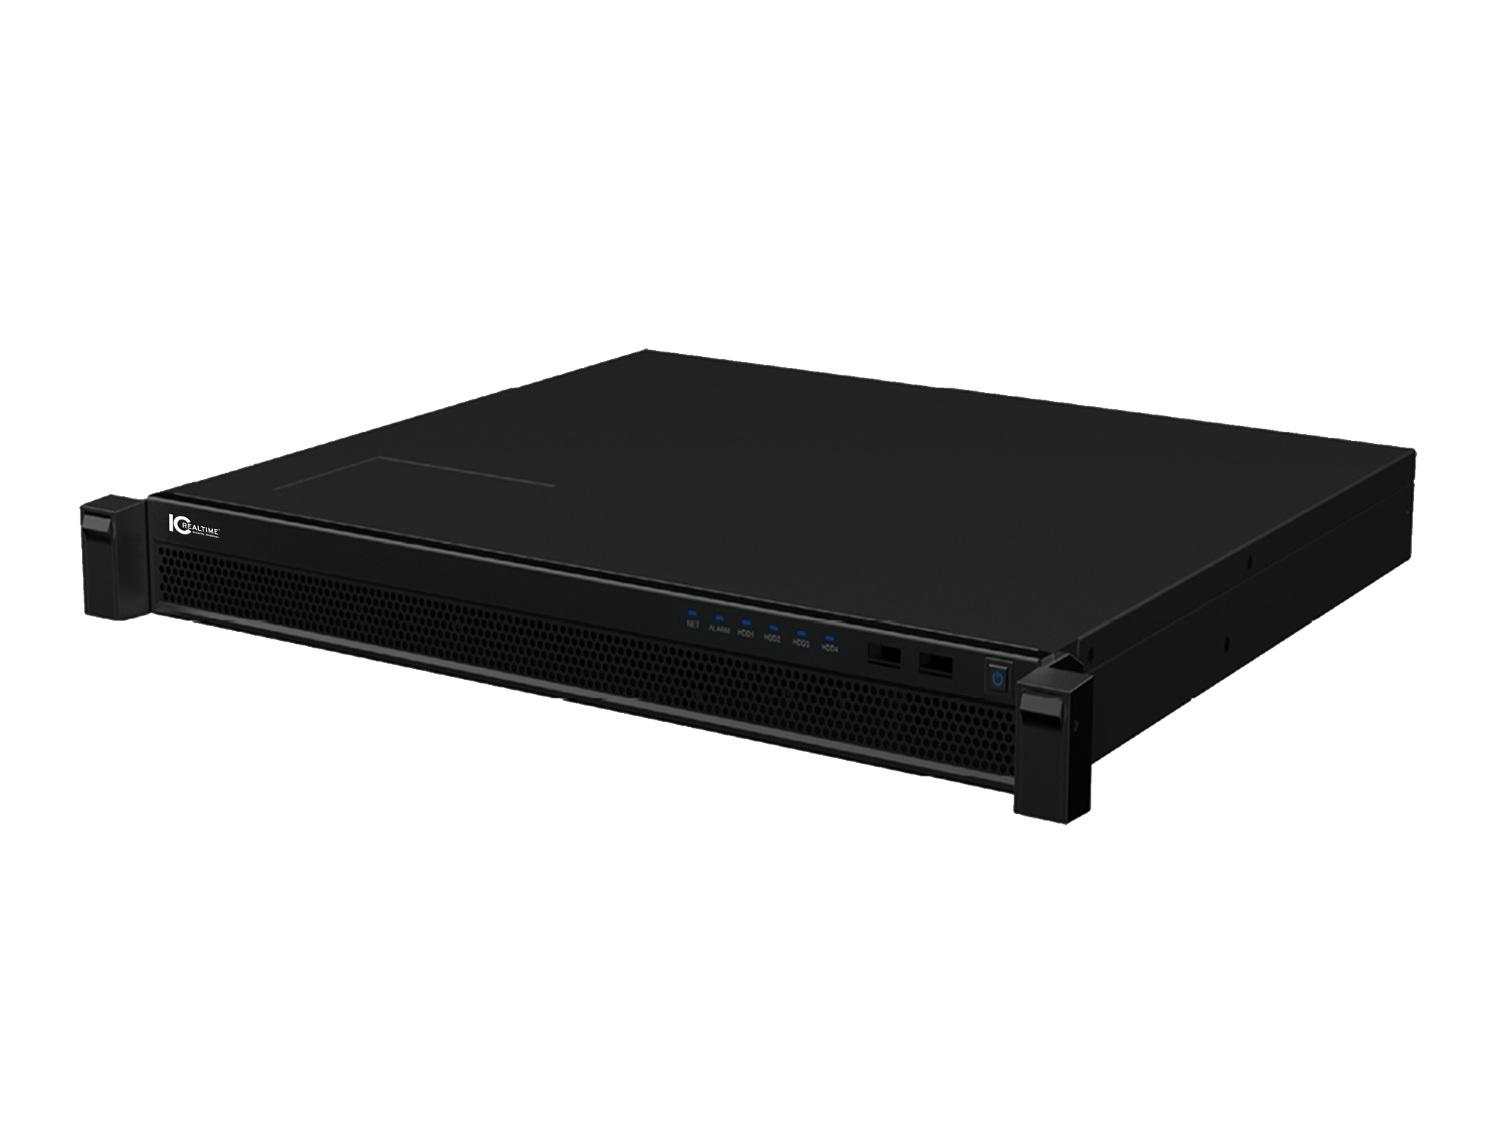 ICM-7100SE 1U Rackmount/Dedicated Enterprise Video Management System Applicance/1TB Included by ICRealtime